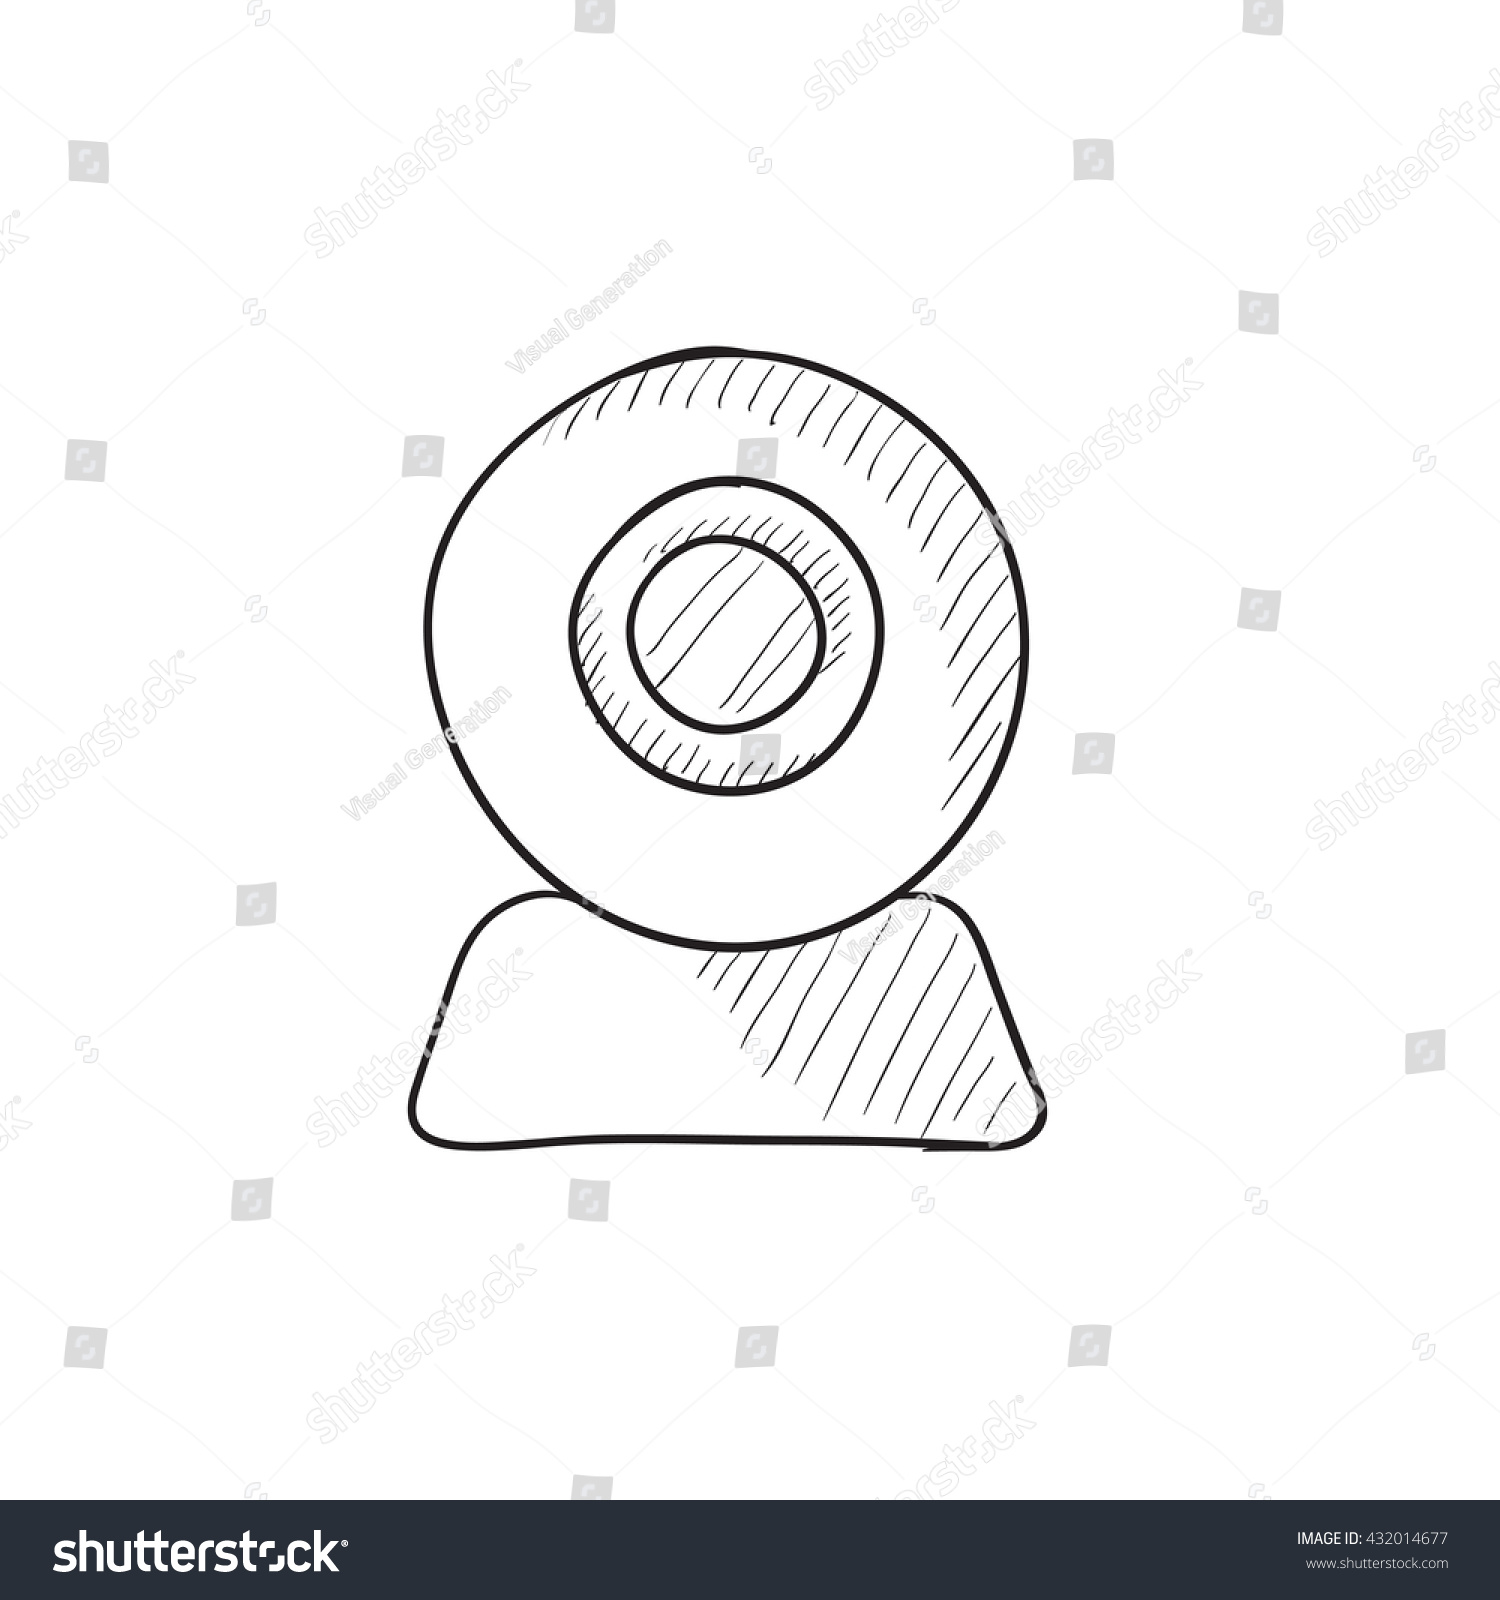 web camera vector sketch icon isolated stock vector royalty free Web Page Diagram web camera vector sketch icon isolated on background hand drawn web camera icon web